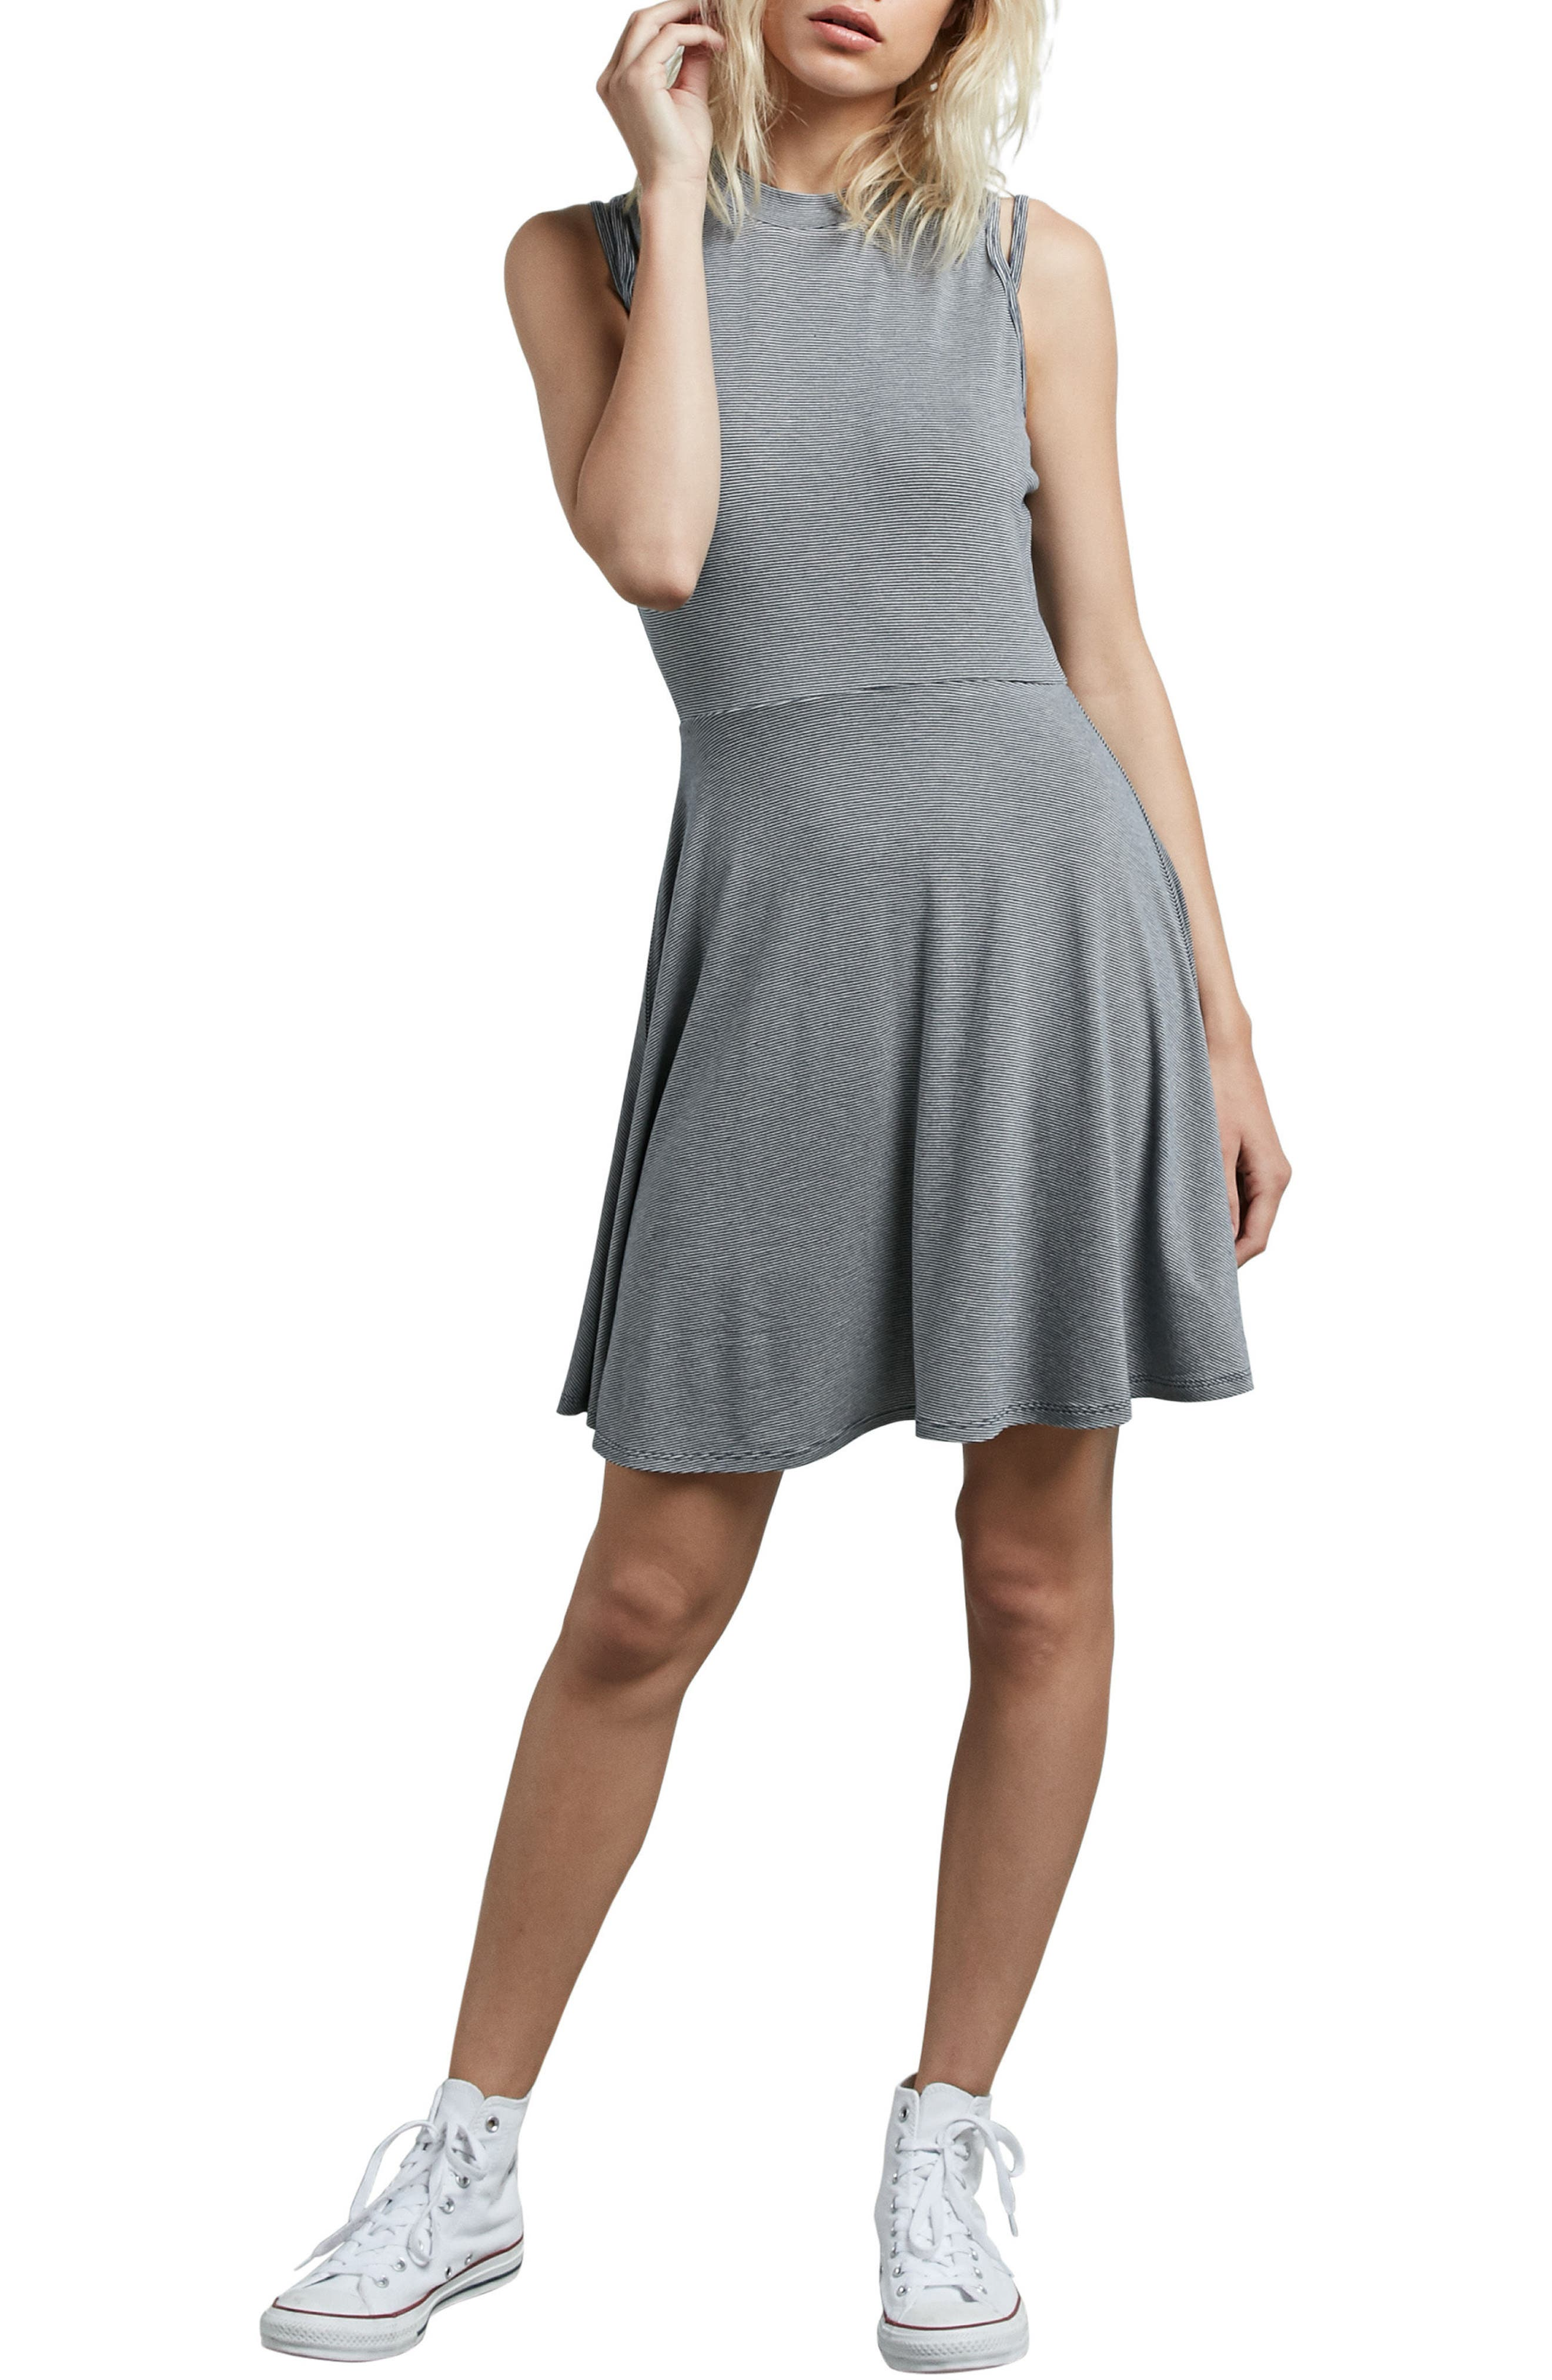 Open Arms Strappy Skater Dress,                         Main,                         color, Navy Vnt